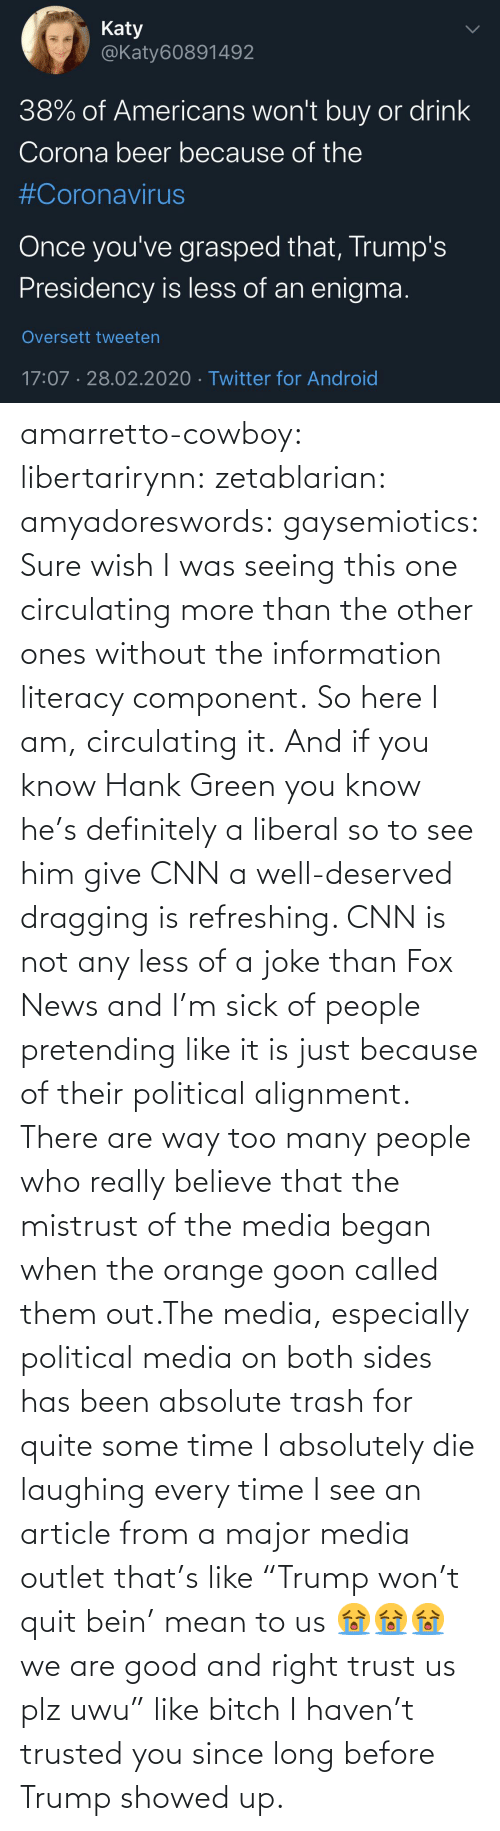 "article: amarretto-cowboy:  libertarirynn:  zetablarian:  amyadoreswords:   gaysemiotics:       Sure wish I was seeing this one circulating more than the other ones without the information literacy component. So here I am, circulating it.    And if you know Hank Green you know he's definitely a liberal so to see him give CNN a well-deserved dragging is refreshing. CNN is not any less of a joke than Fox News and I'm sick of people pretending like it is just because of their political alignment.   There are way too many people who really believe that the mistrust of the media began when the orange goon called them out.The media, especially political media on both sides has been absolute trash for quite some time   I absolutely die laughing every time I see an article from a major media outlet that's like ""Trump won't quit bein' mean to us 😭😭😭 we are good and right trust us plz uwu"" like bitch I haven't trusted you since long before Trump showed up."